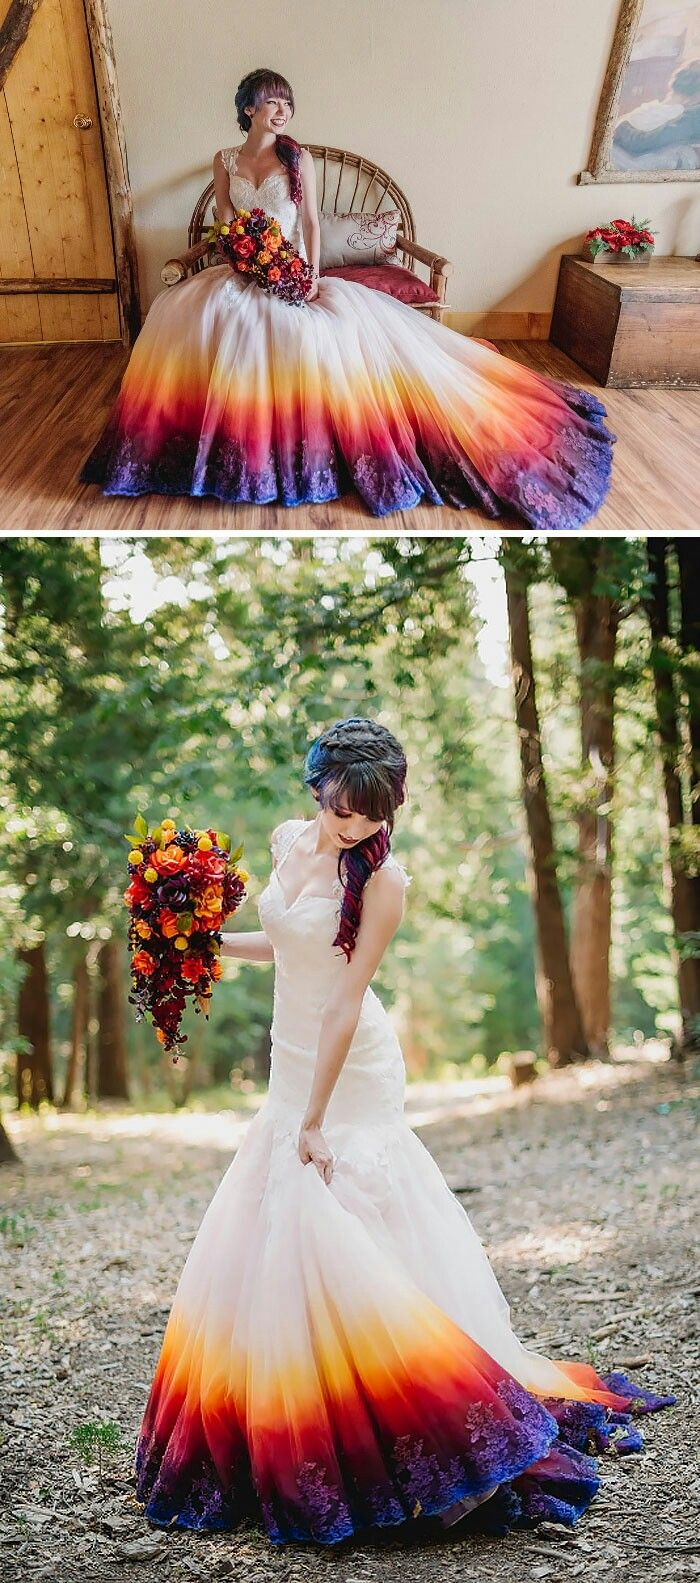 dipped wedding dress ombre wedding dress Done whens the wedding